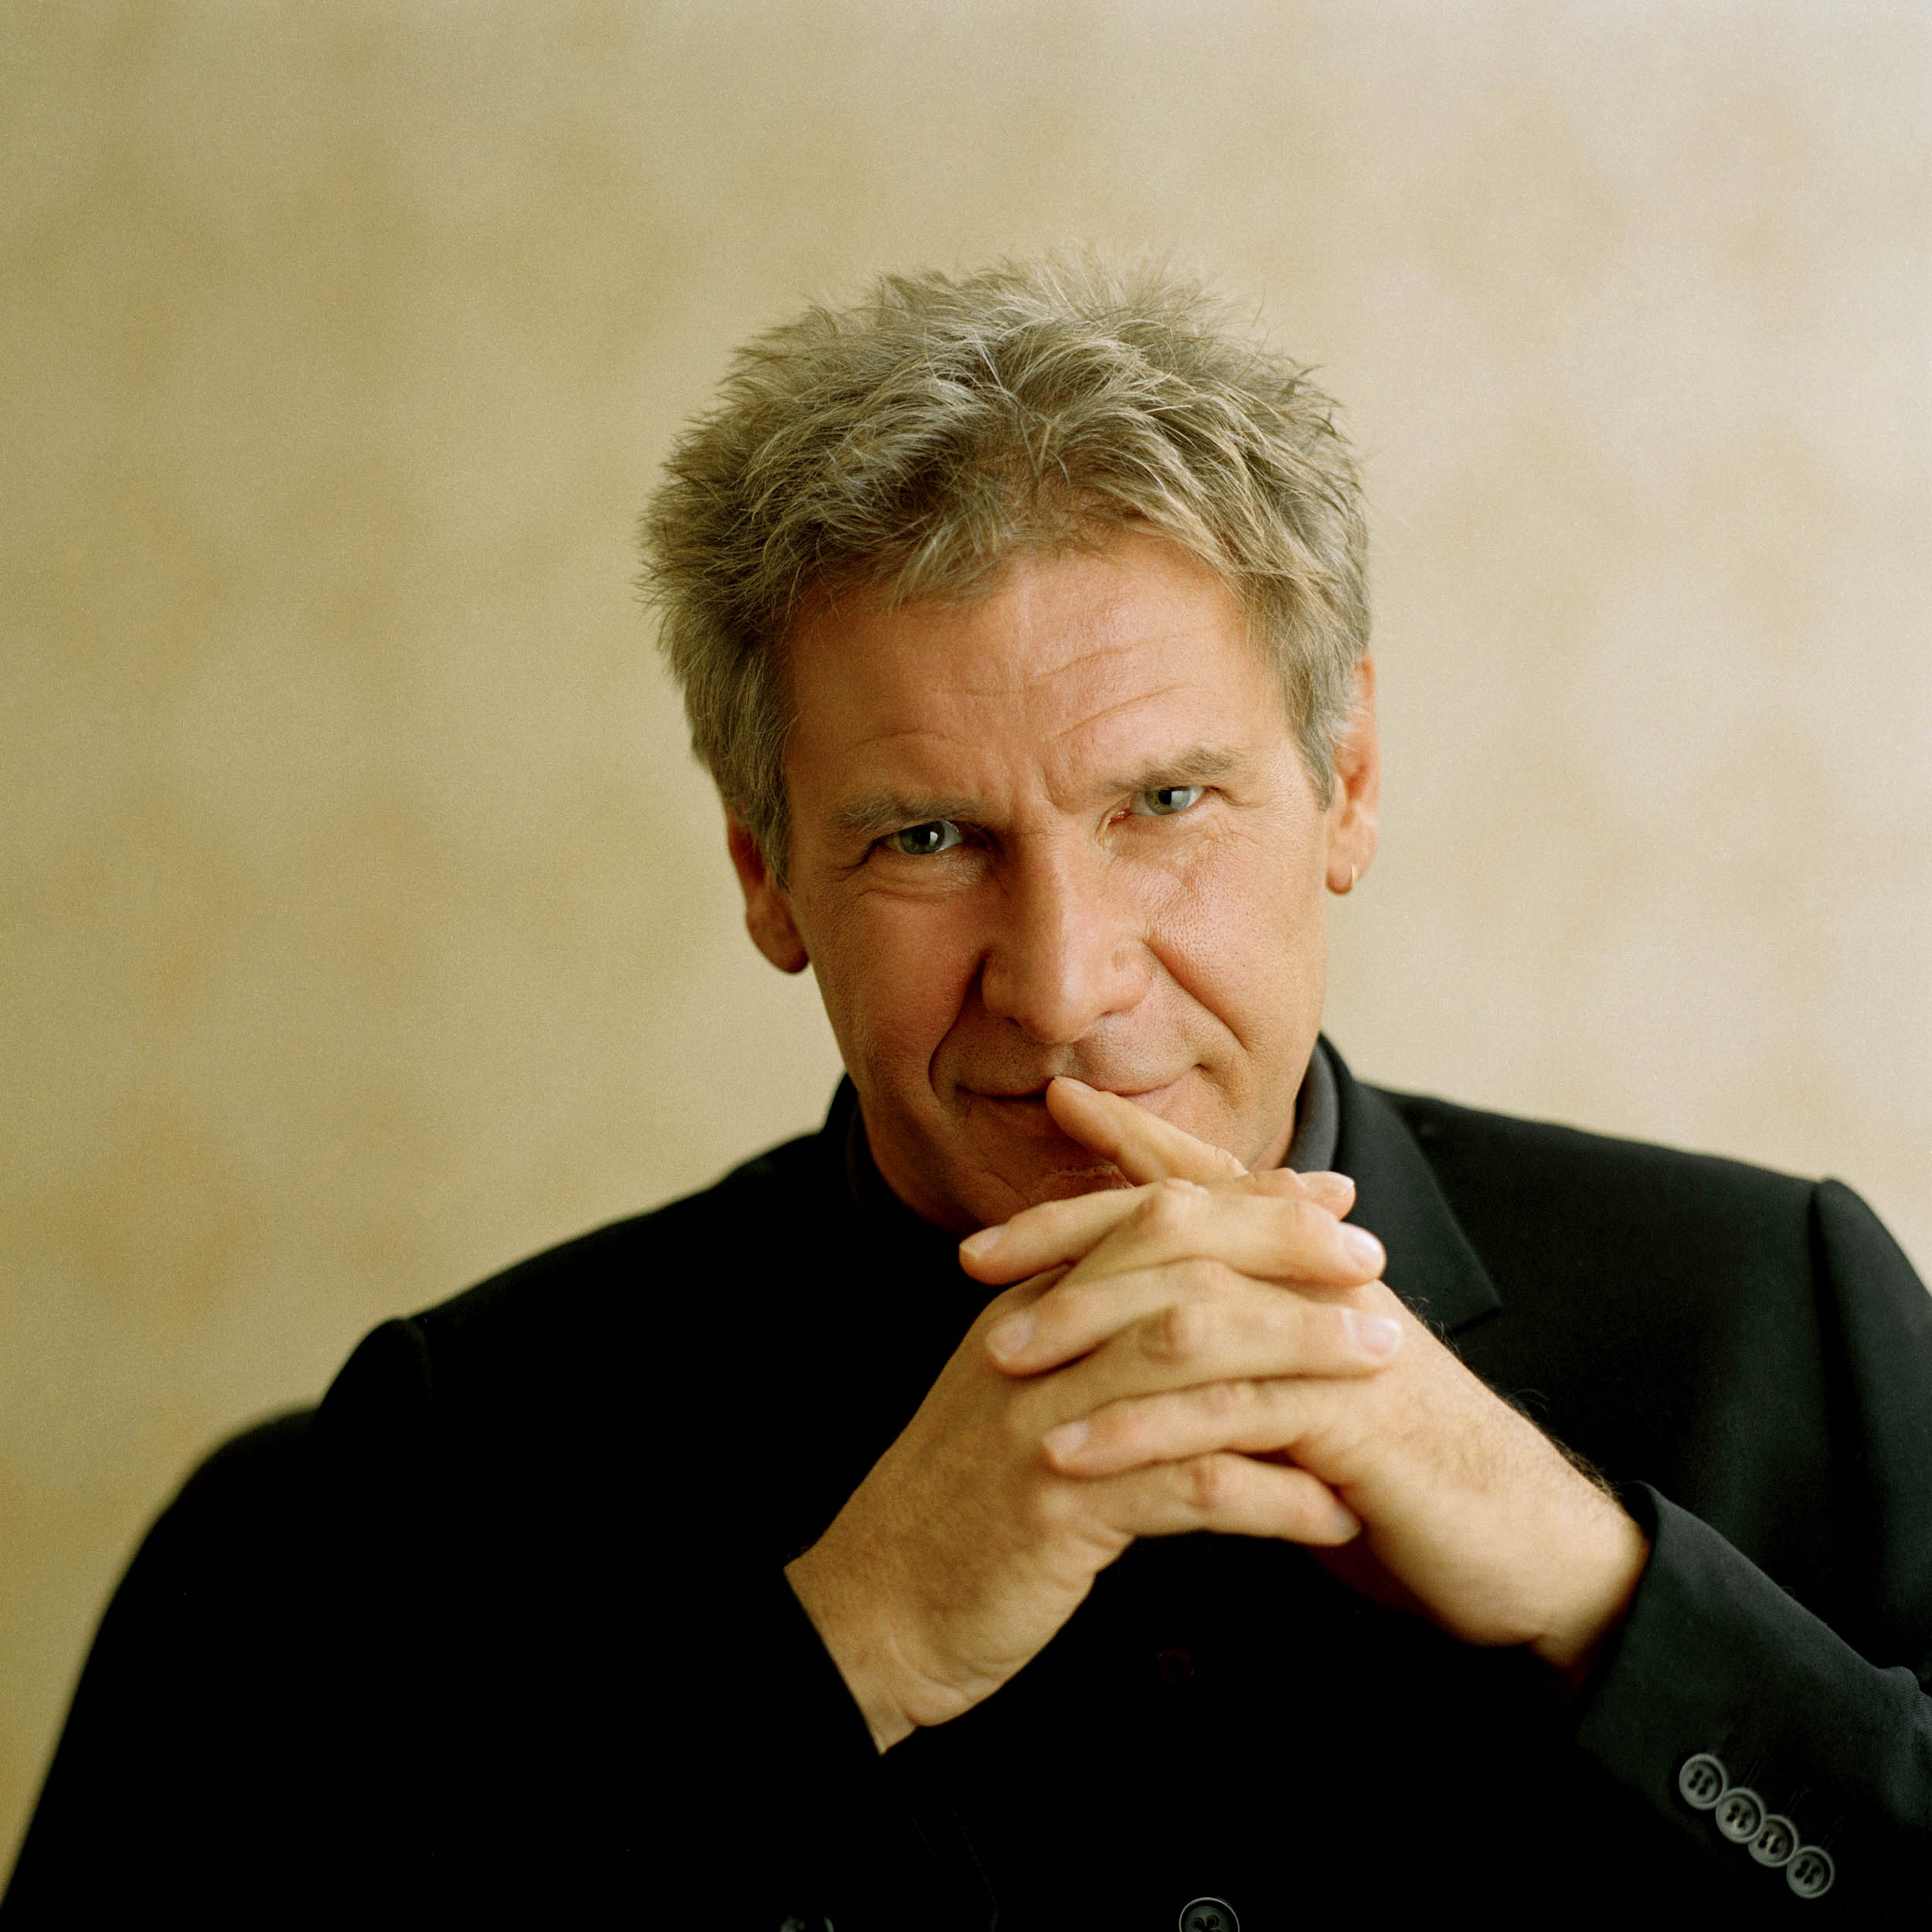 Harrison Ford Wallpapers hd